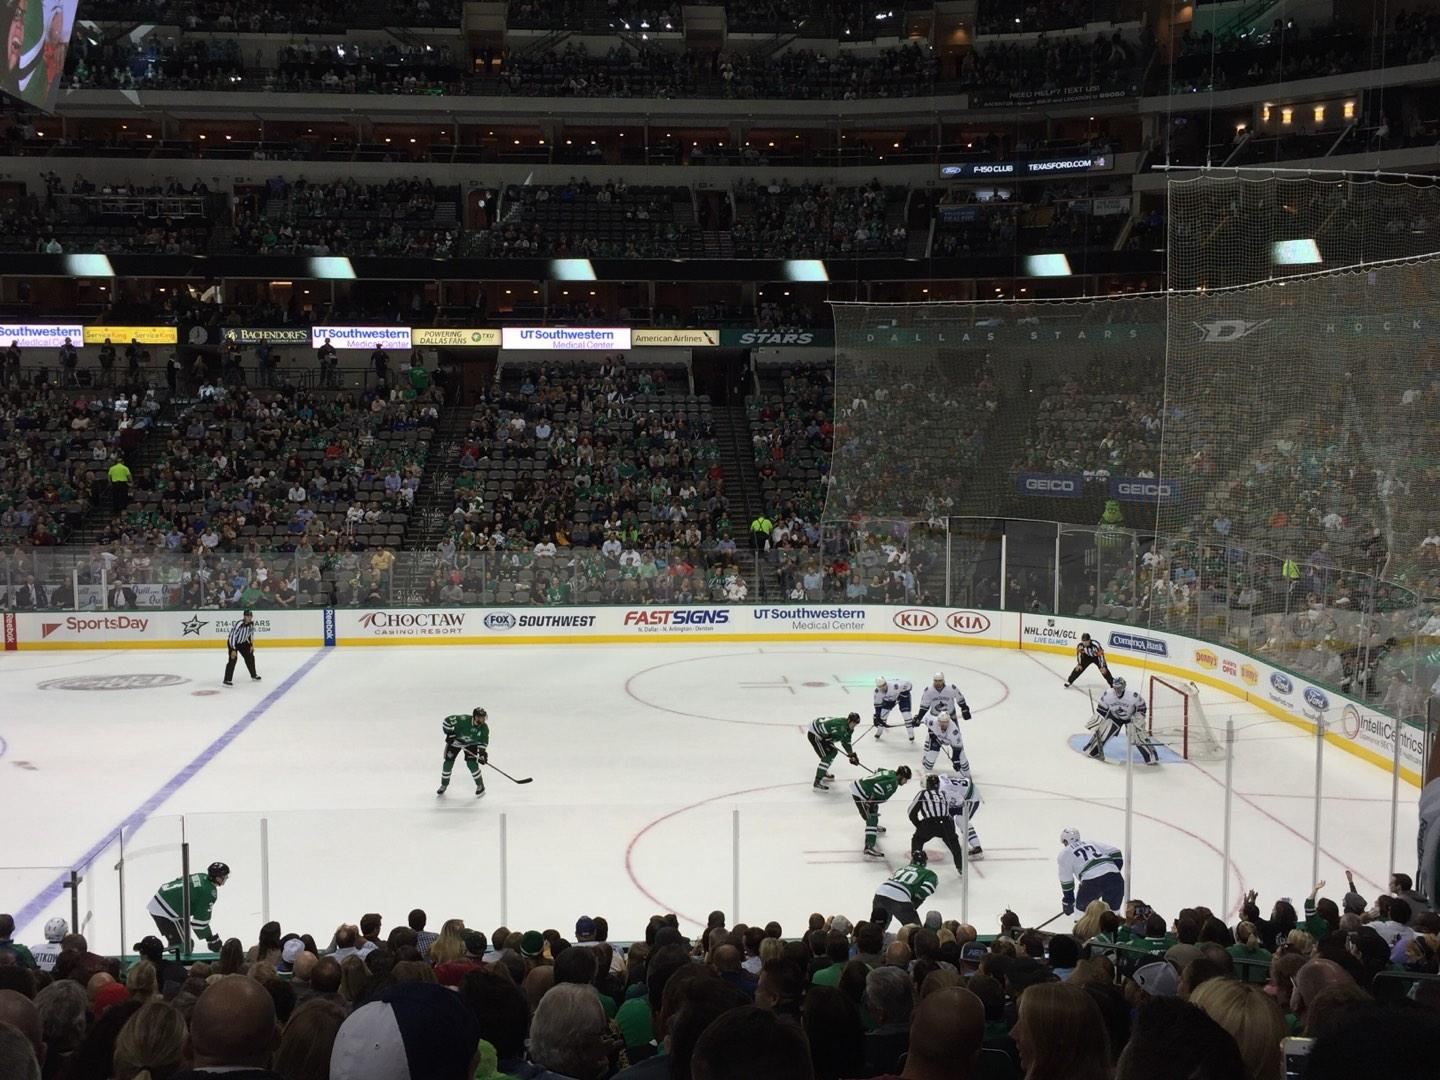 American Airlines Center Section 117 Row V Seat 6